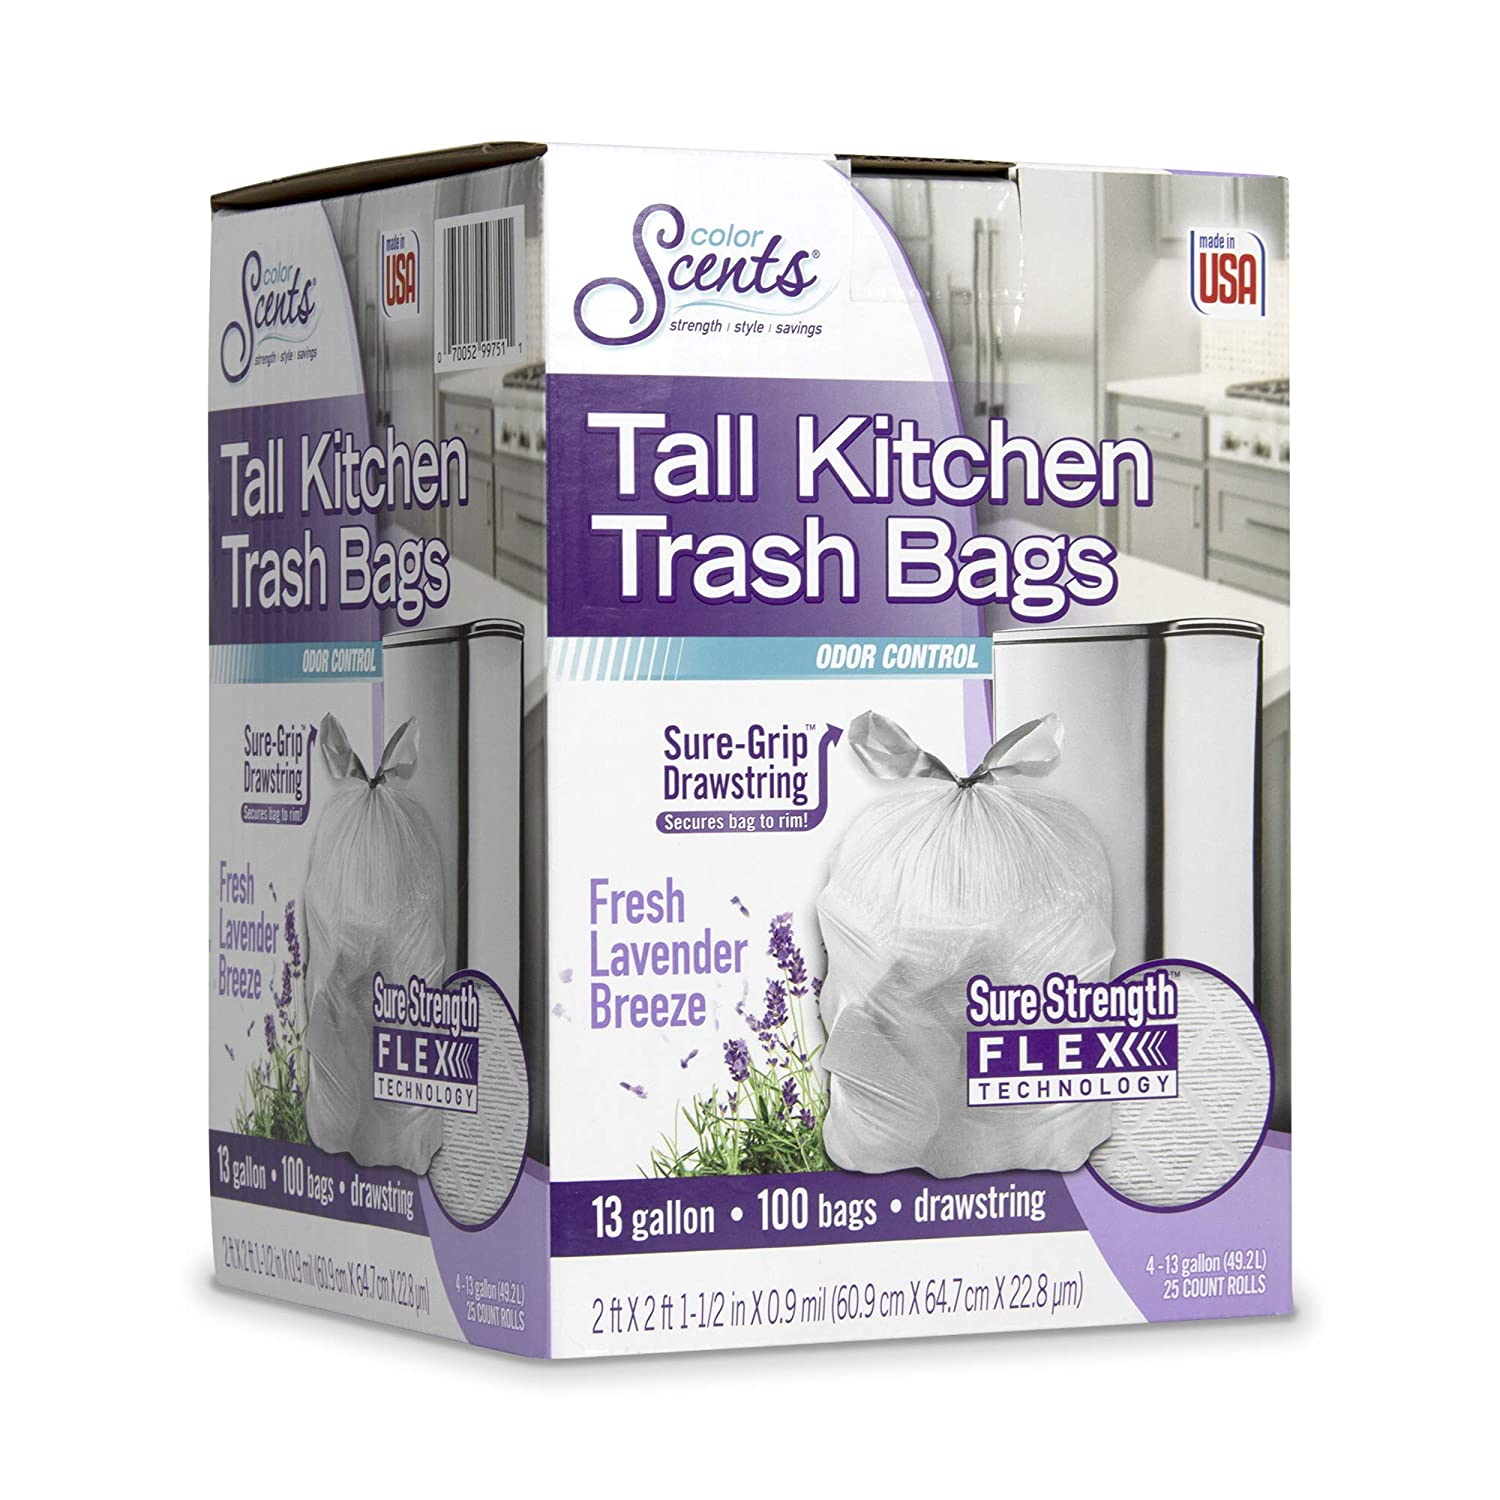 Color Scents Tall Kitchen Trash Bags - 13 Gallon, 100 Count (Pack of 1) Drawstring, Fresh Lavender Breeze Scented